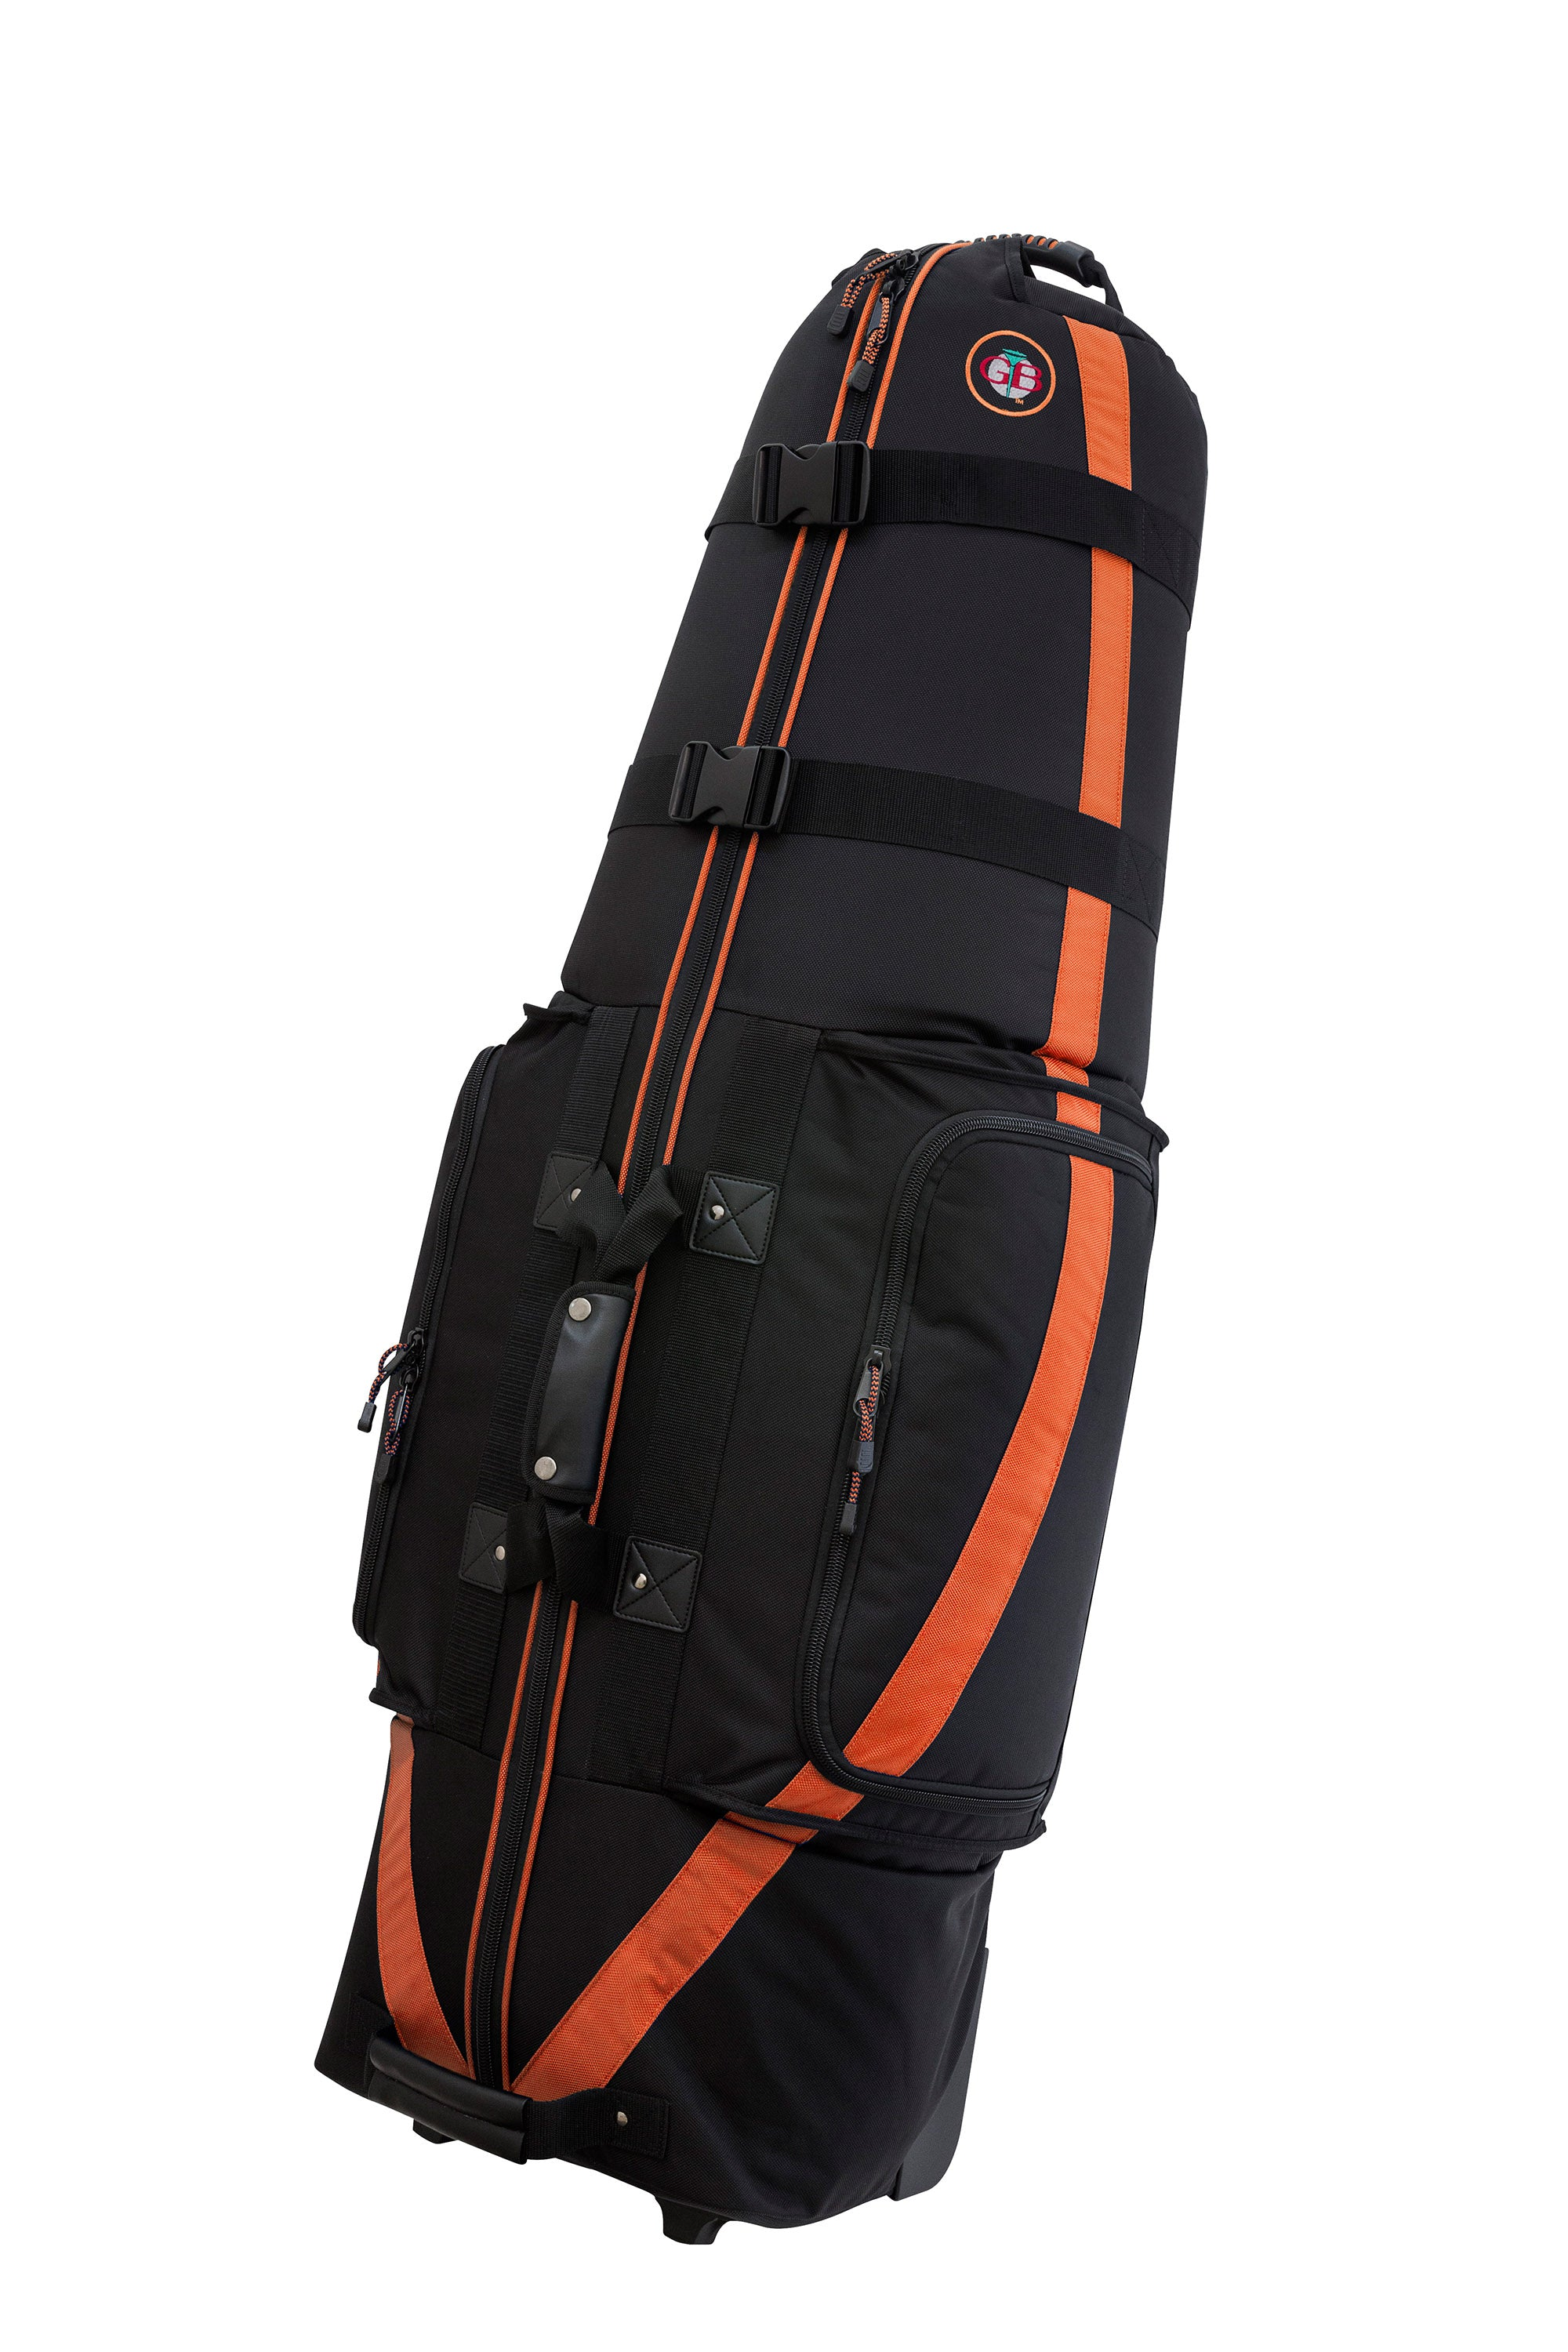 Medallion 6.0 Golf Travel Bag